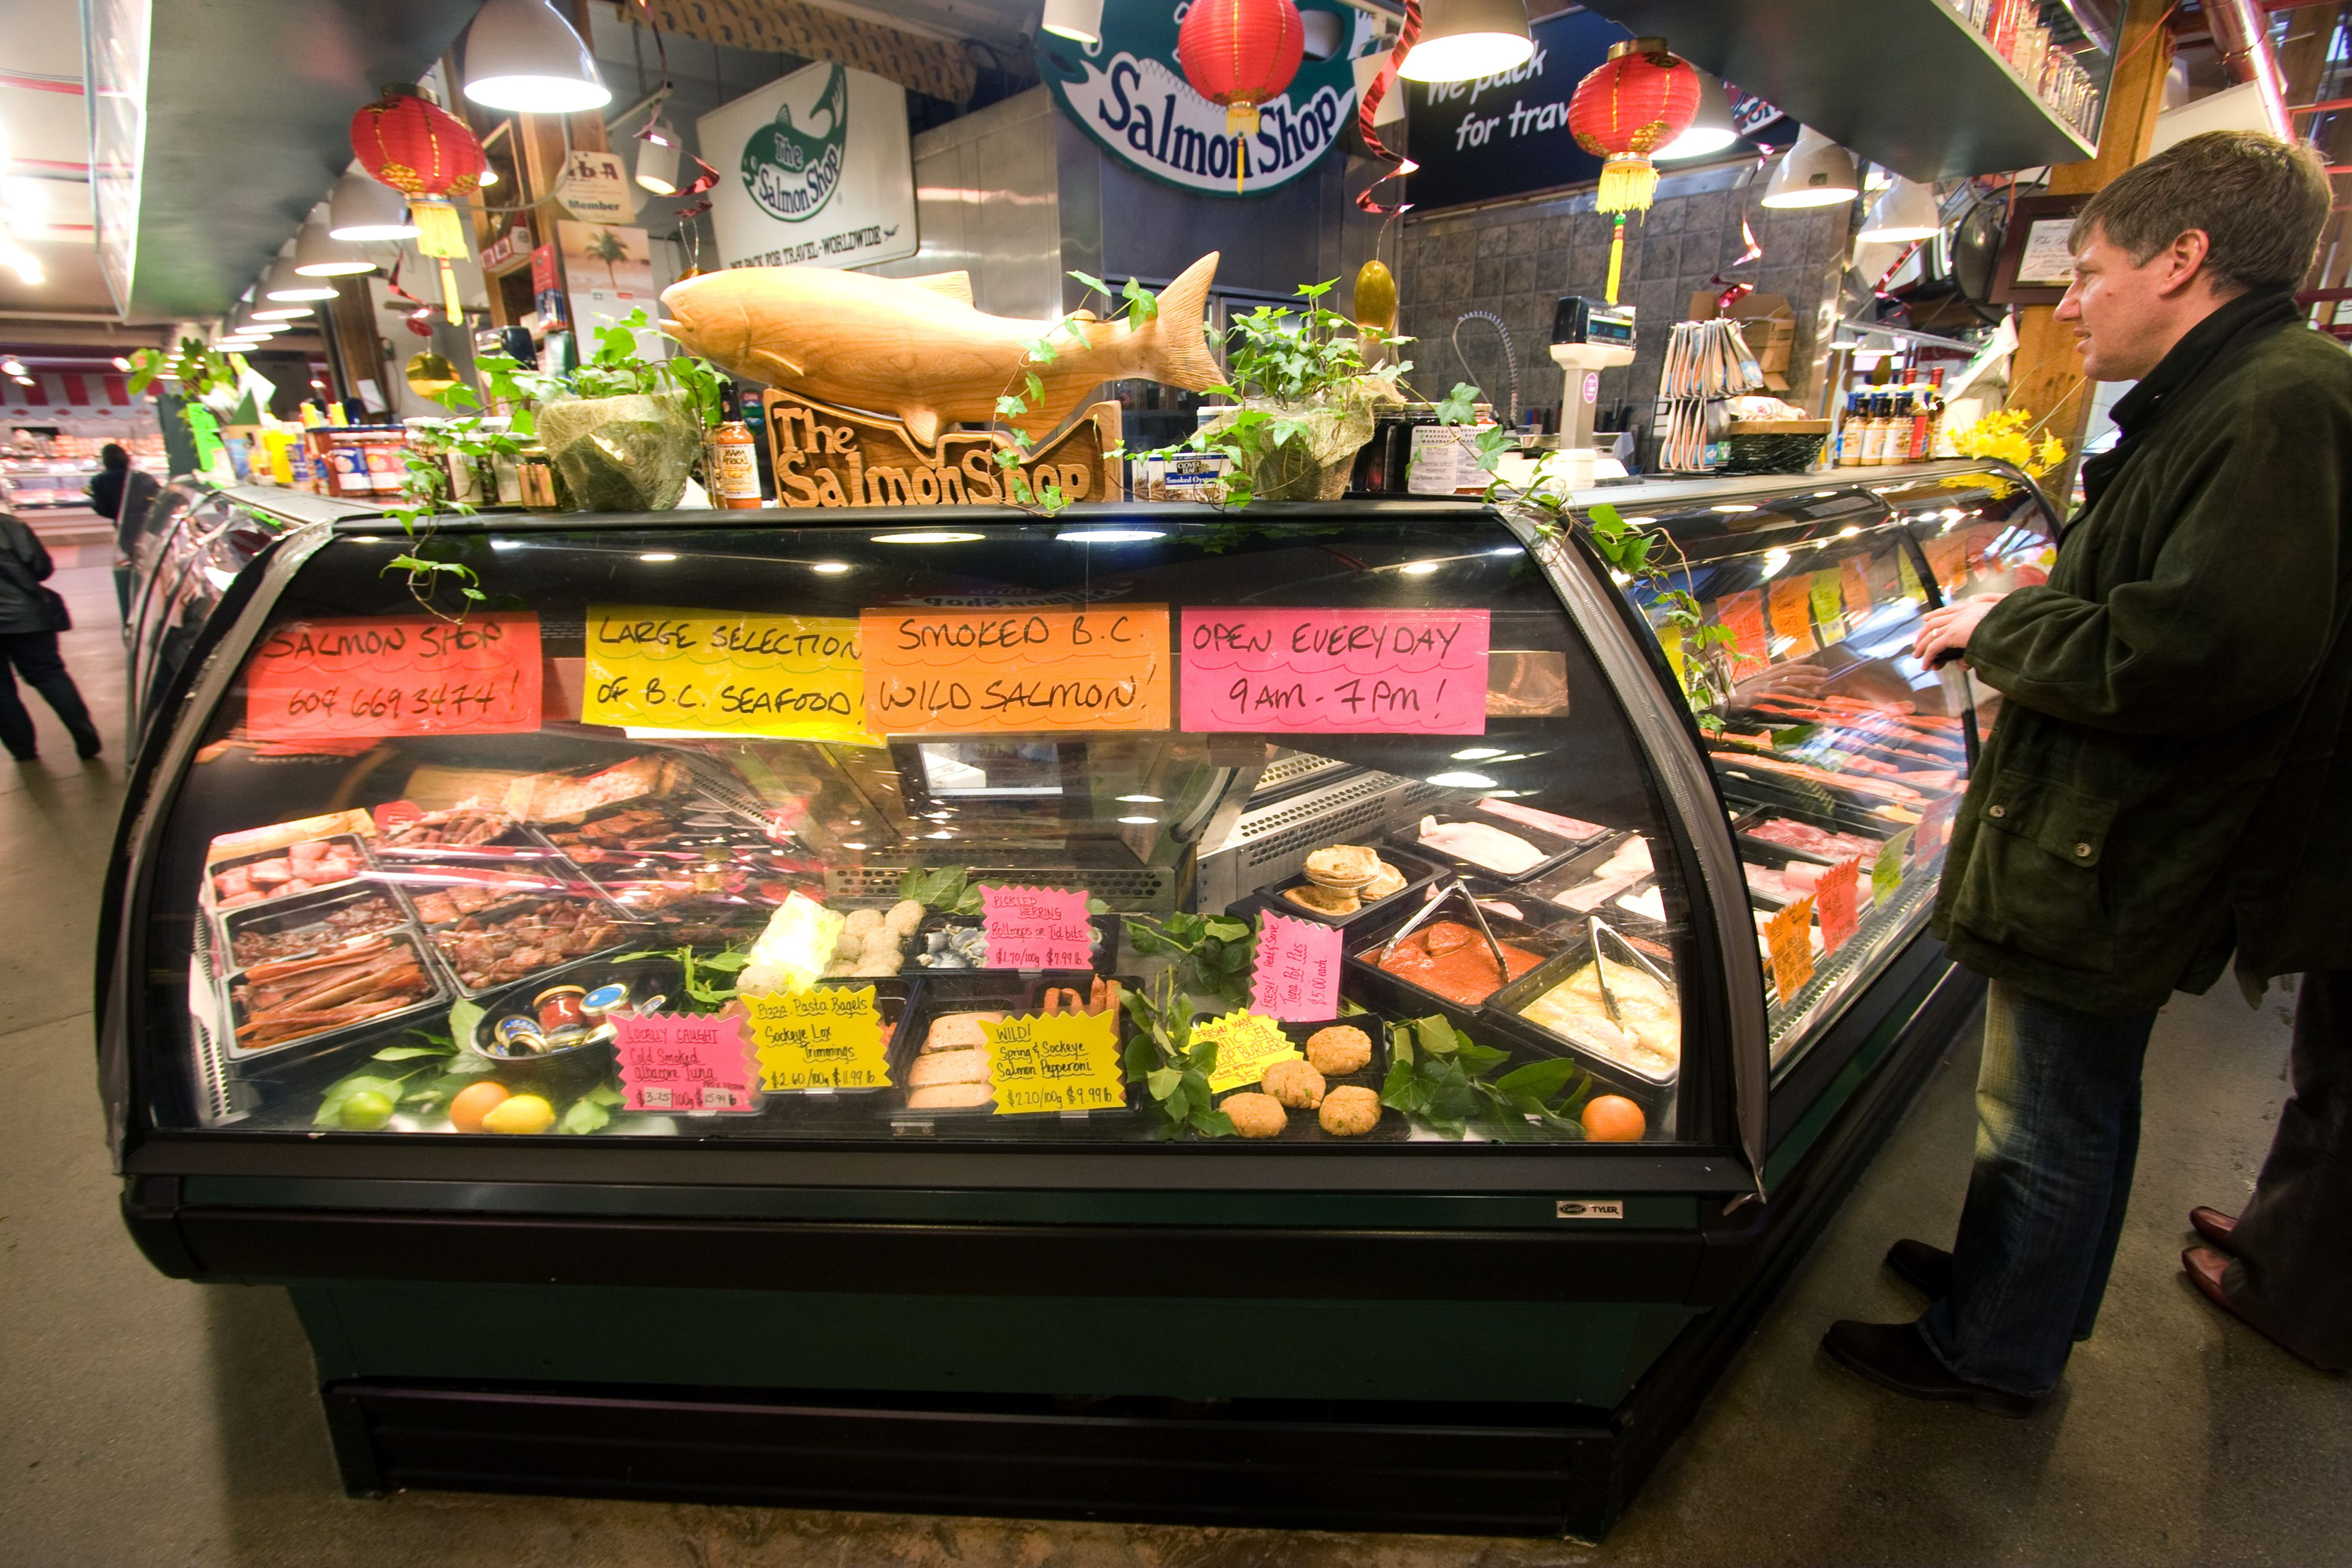 Man standing by fish counter at The Salmon Shop on Granville Island